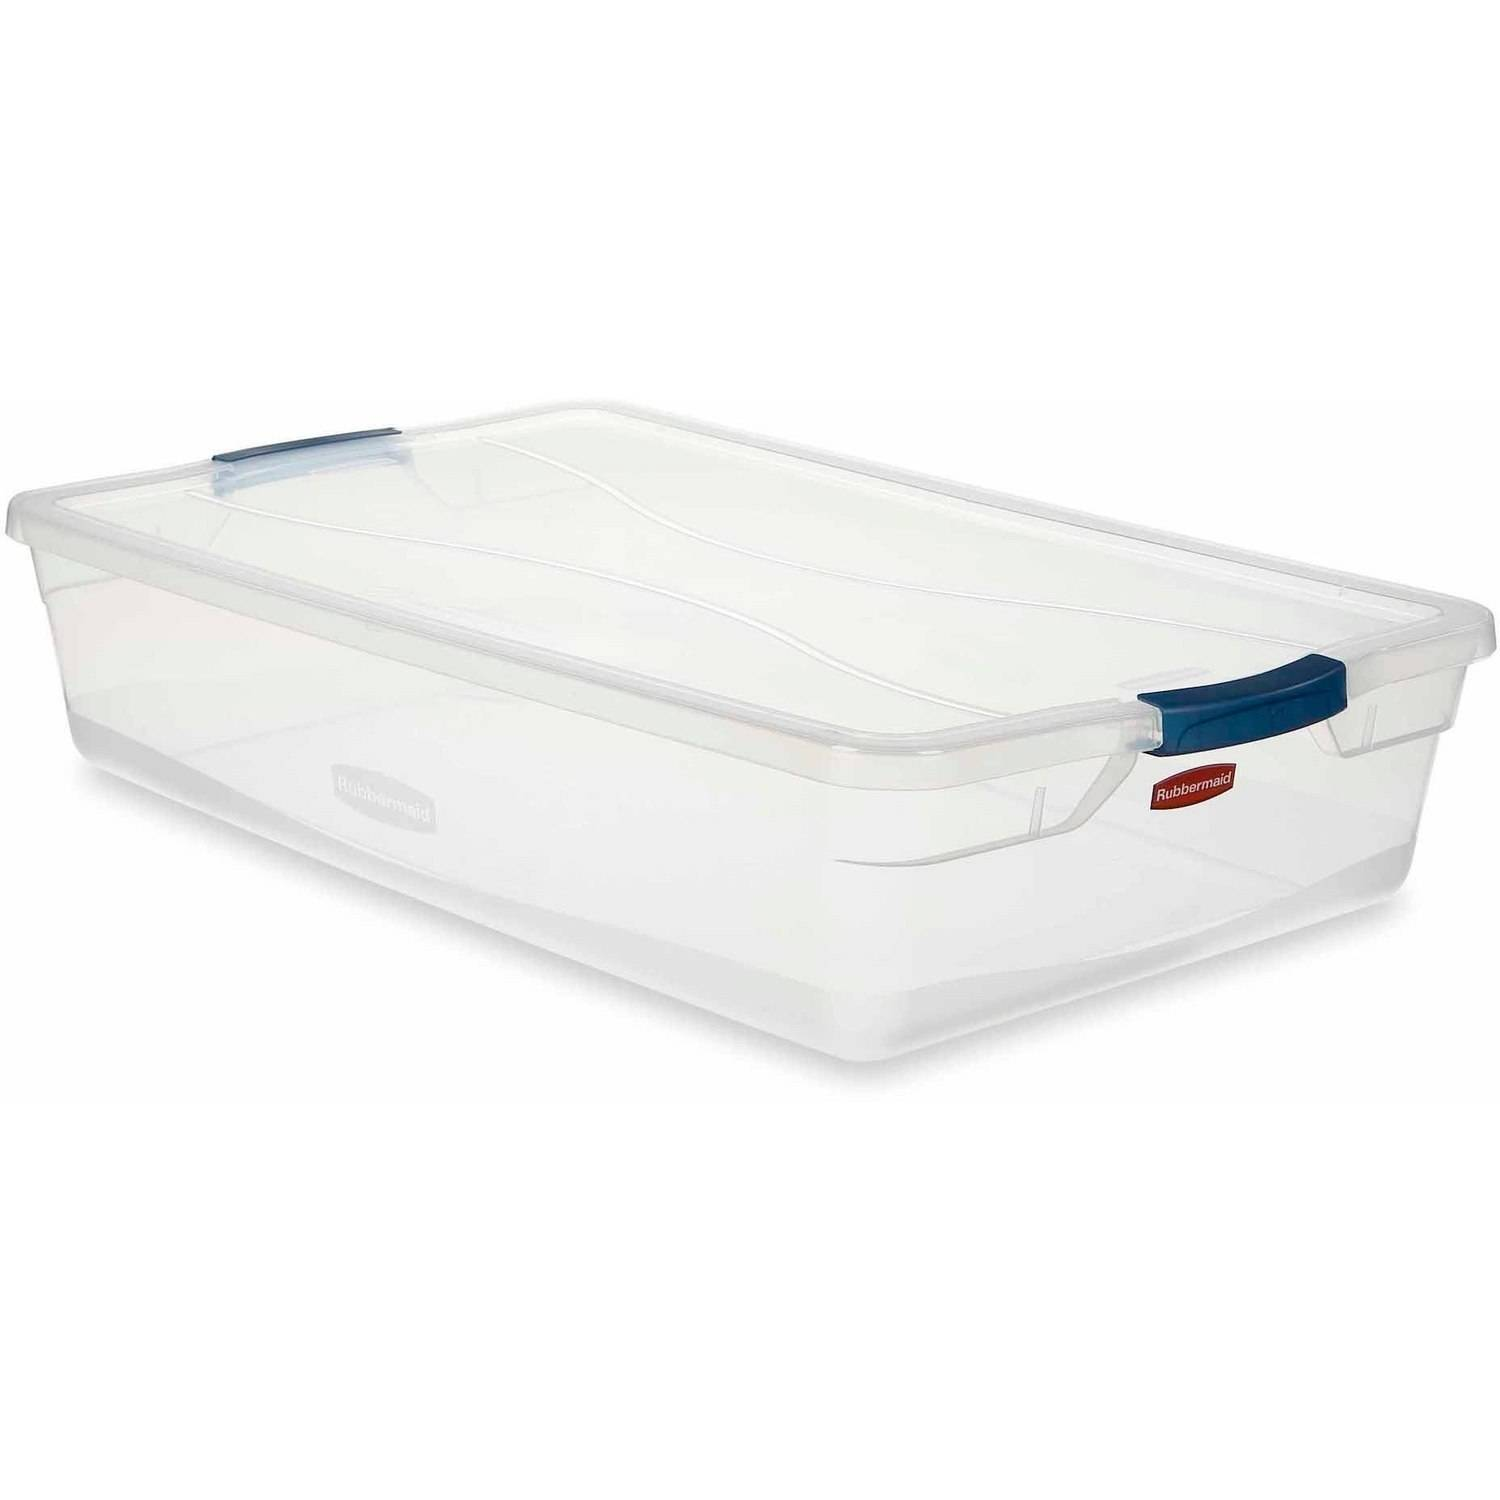 Rubbermaid Clever Store Clears Standard Latch Storage Container, 41-qt., Clear with Blue Latch